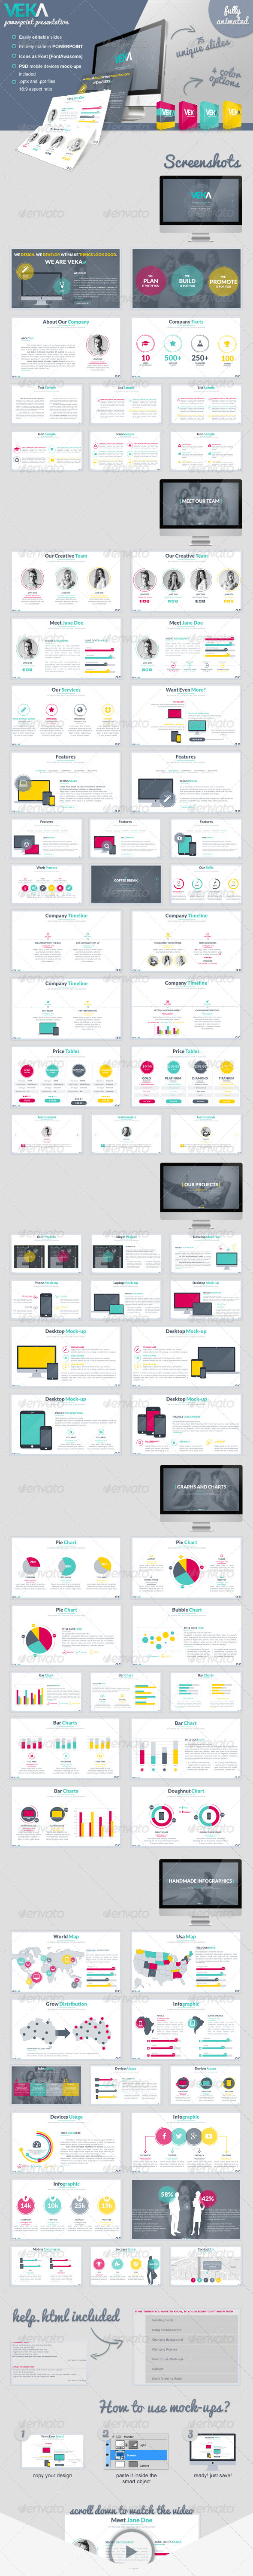 GraphicRiver Veka Powerpoint Presentation 8676420